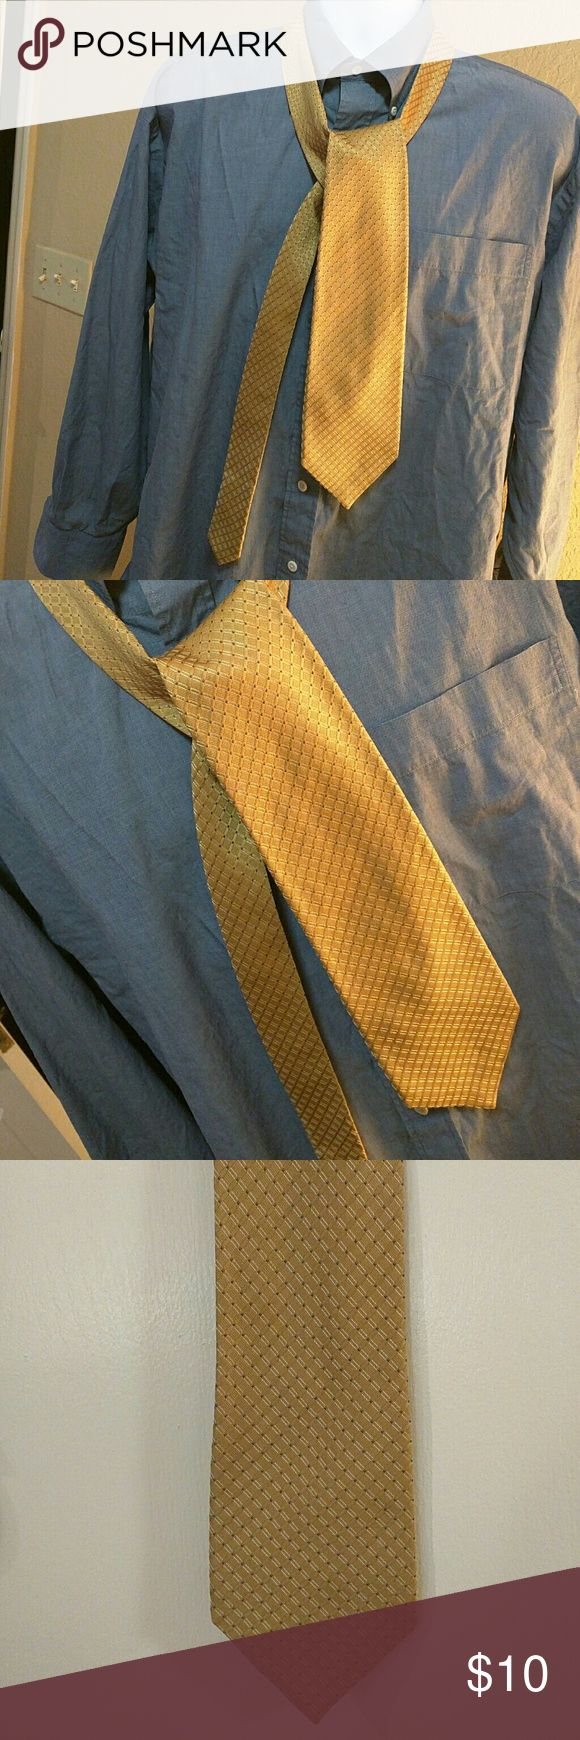 Calvin Klein Men's tie Used few times. In good condition. Color is like gold or mustard with blue. Calvin Klein Accessories Ties